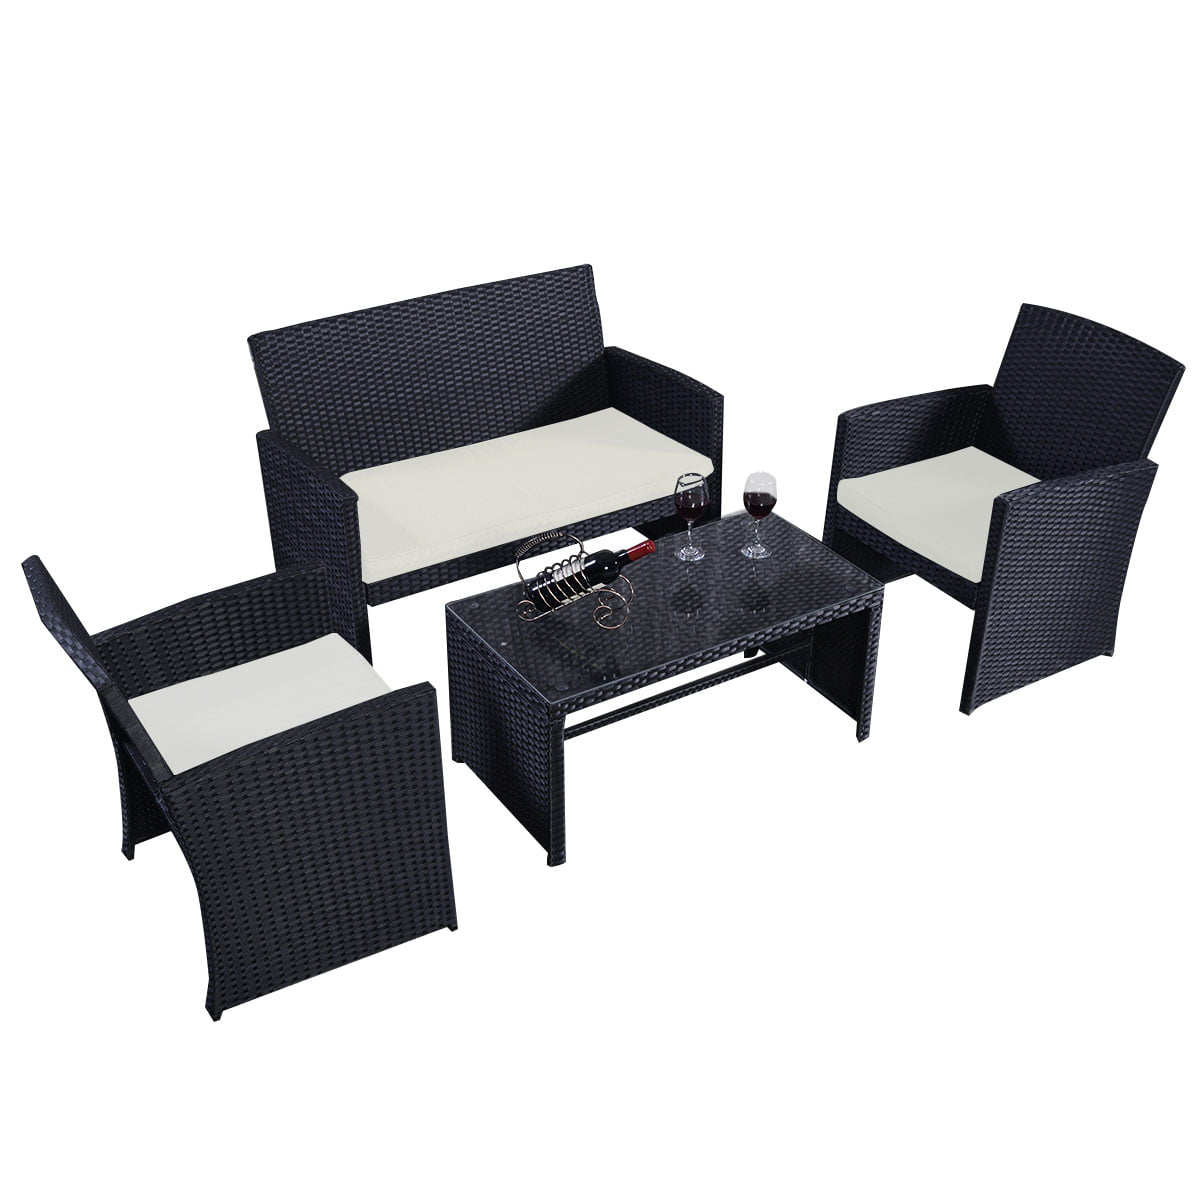 Lovely Costway 4 Pc Rattan Patio Furniture Set Garden Lawn Sofa Wicker Cushioned  Seat Black   Walmart.com